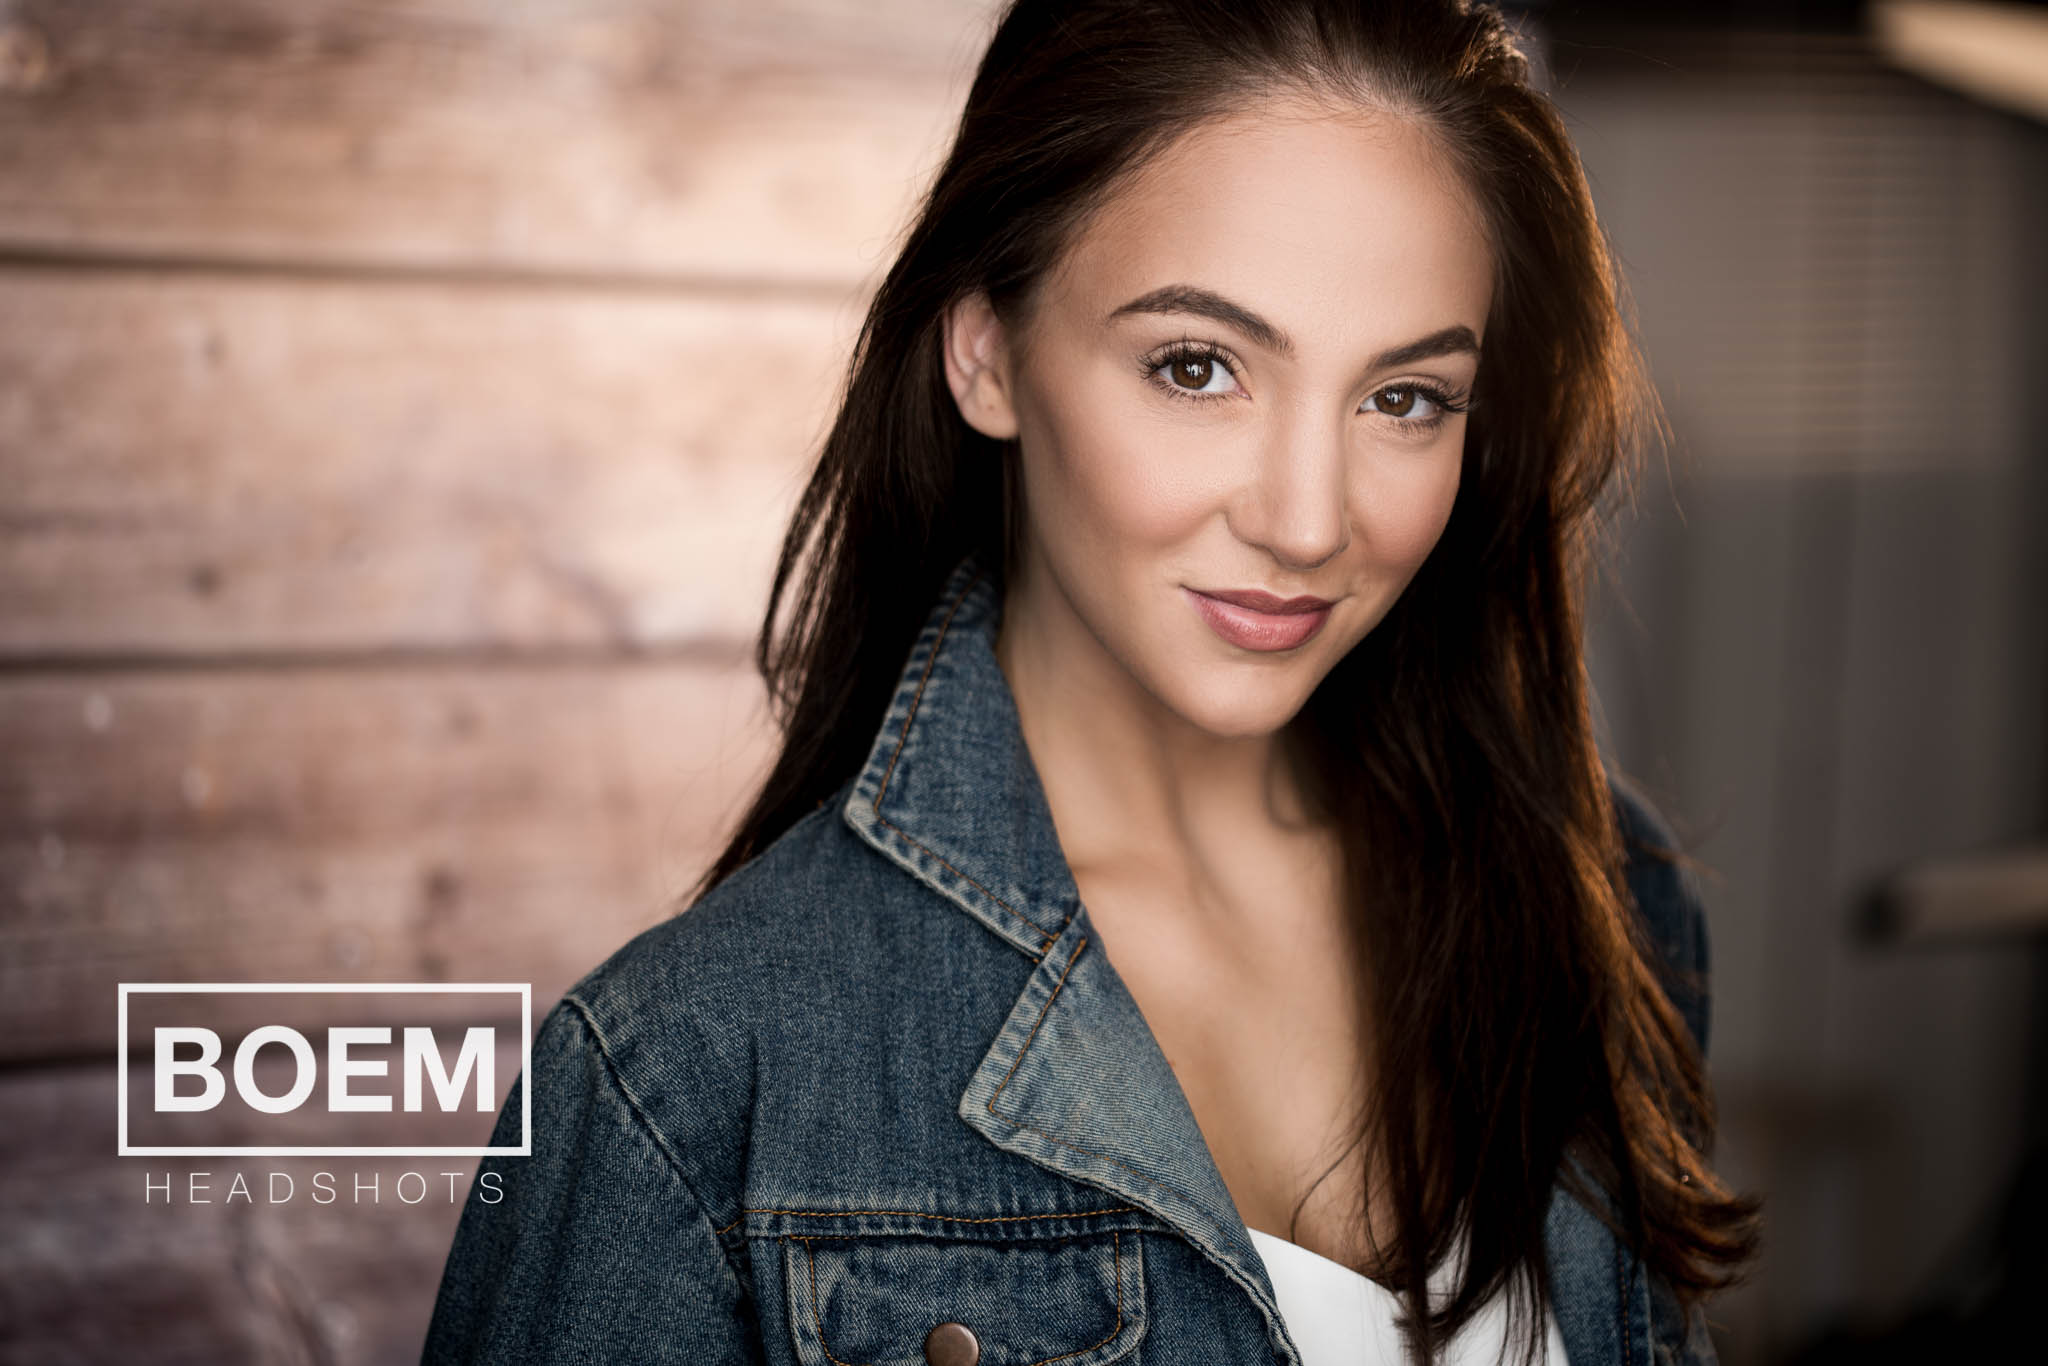 A quick look at the amazing session we had with Steph in the studio today for her acting and performance headshots.